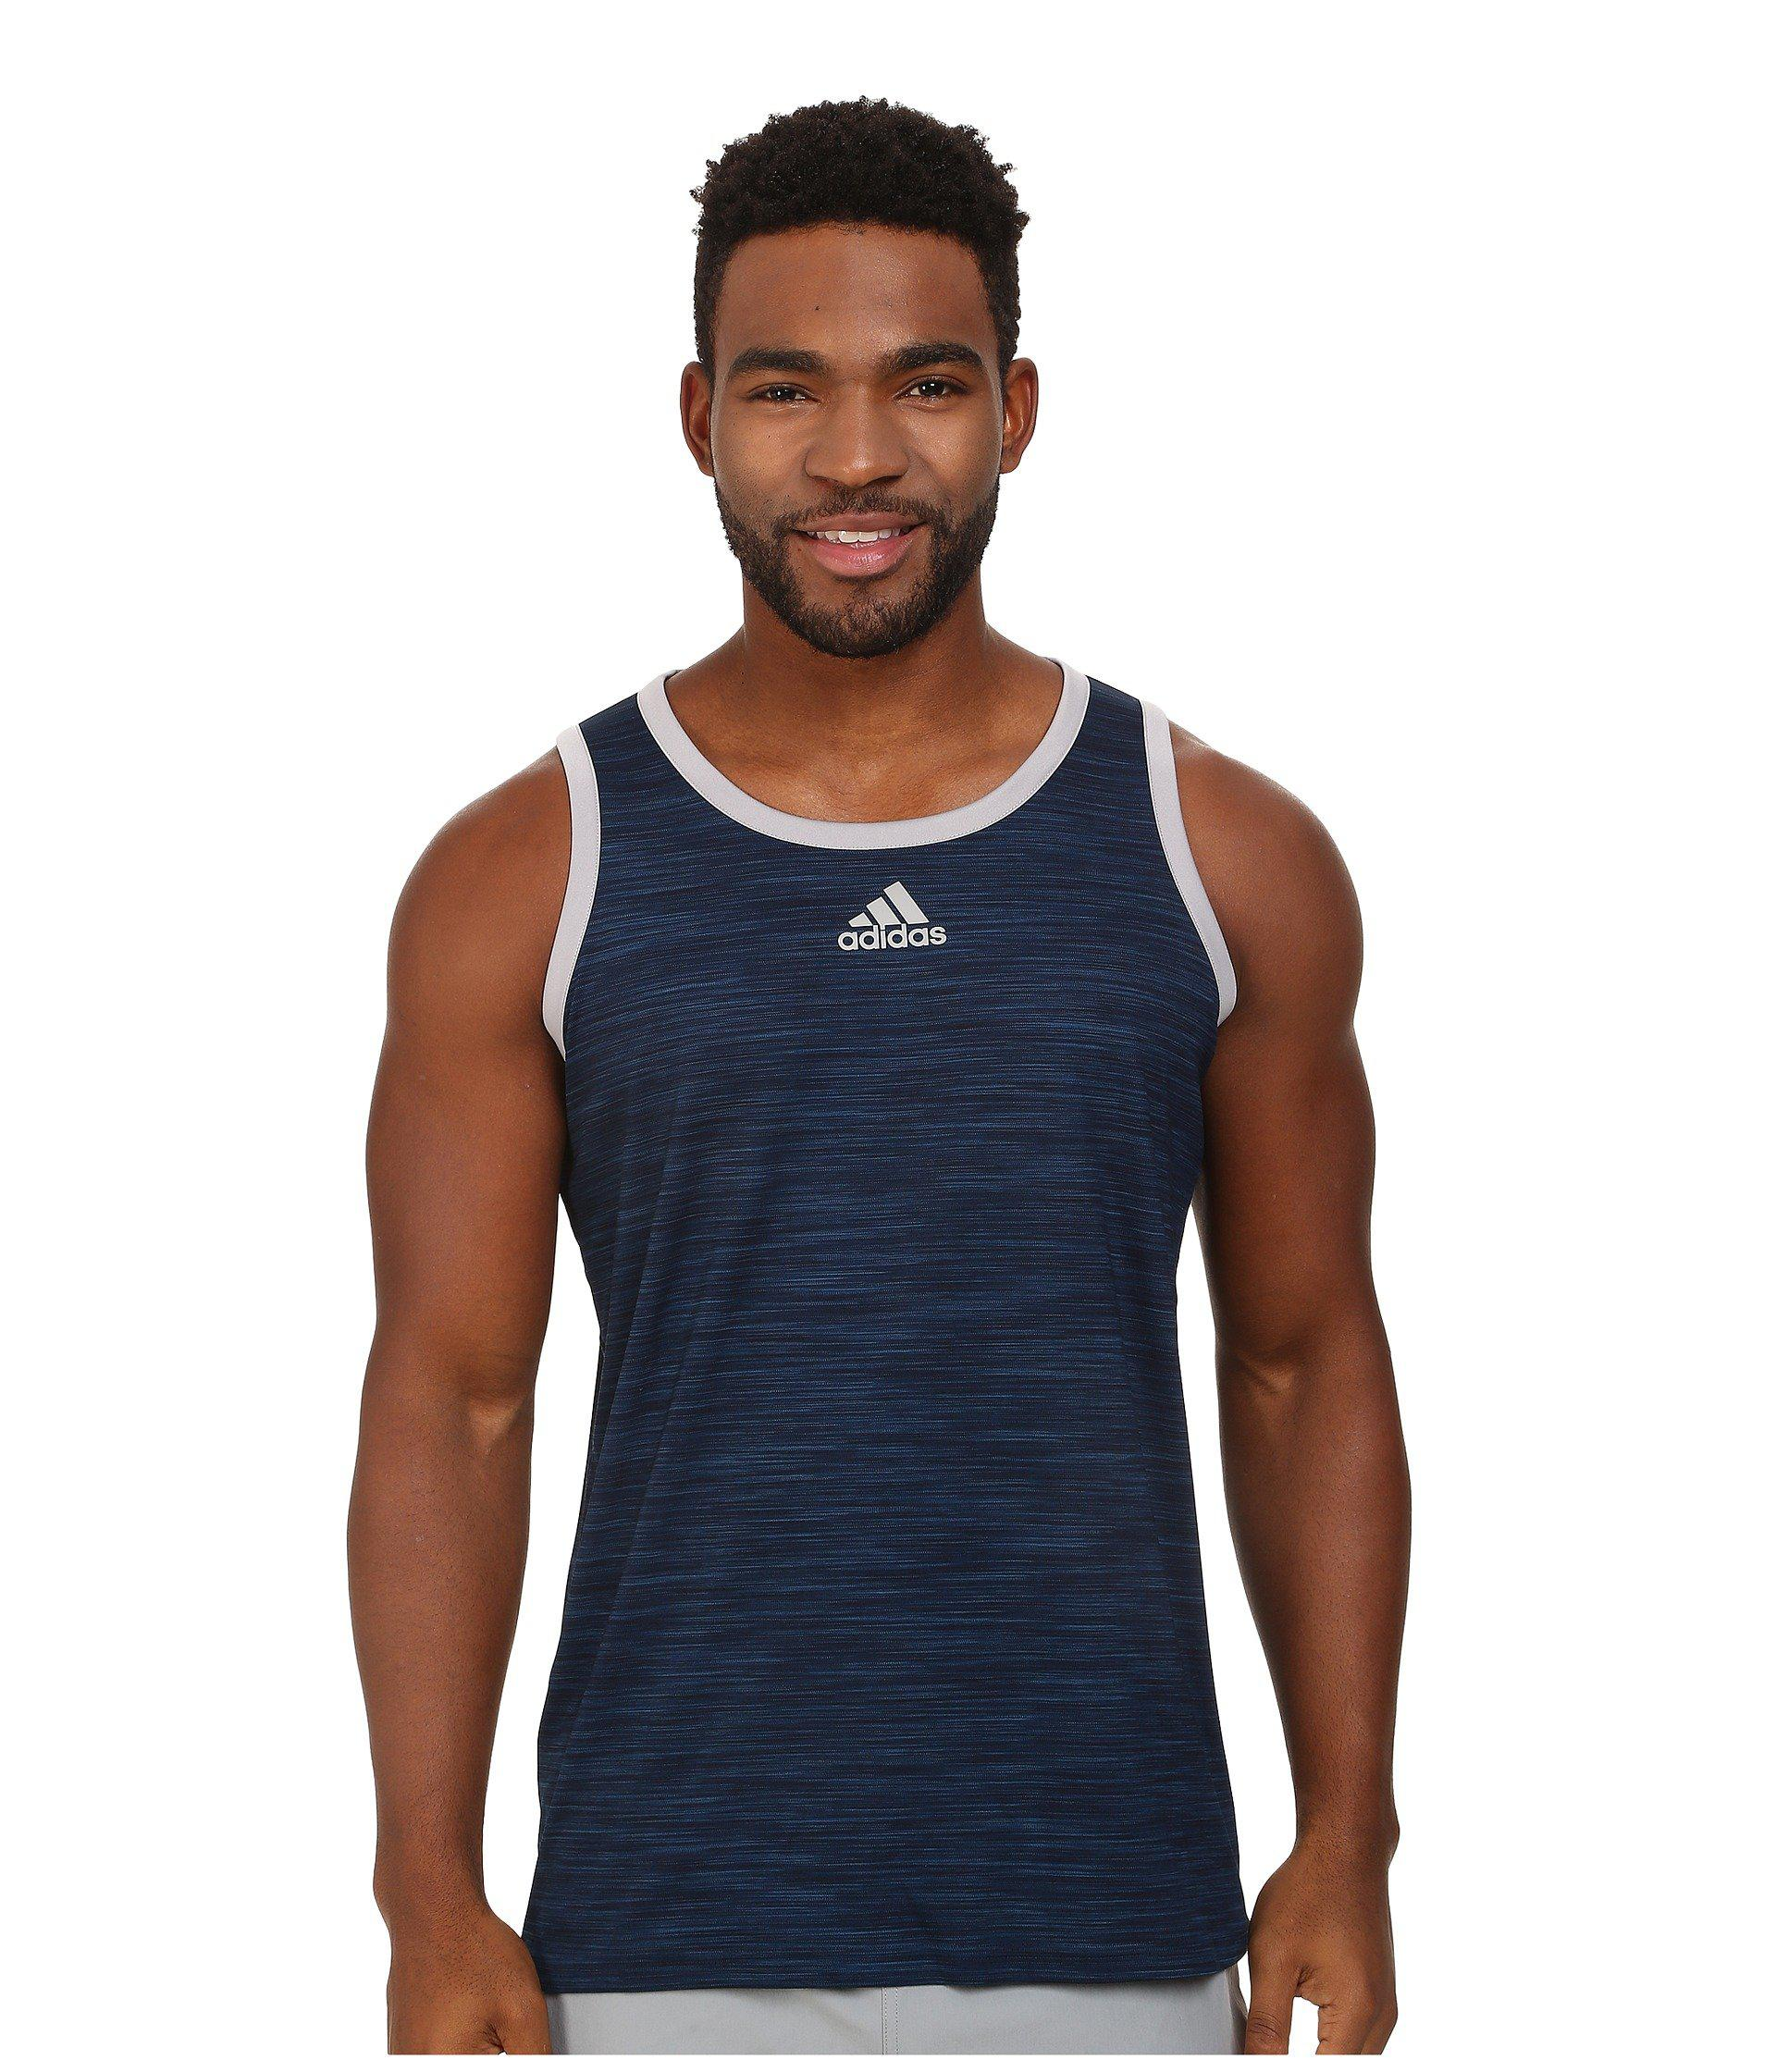 f558e69dc3ae1 Lyst - adidas Heathered Tank (scarlet black) Men s Sleeveless in ...